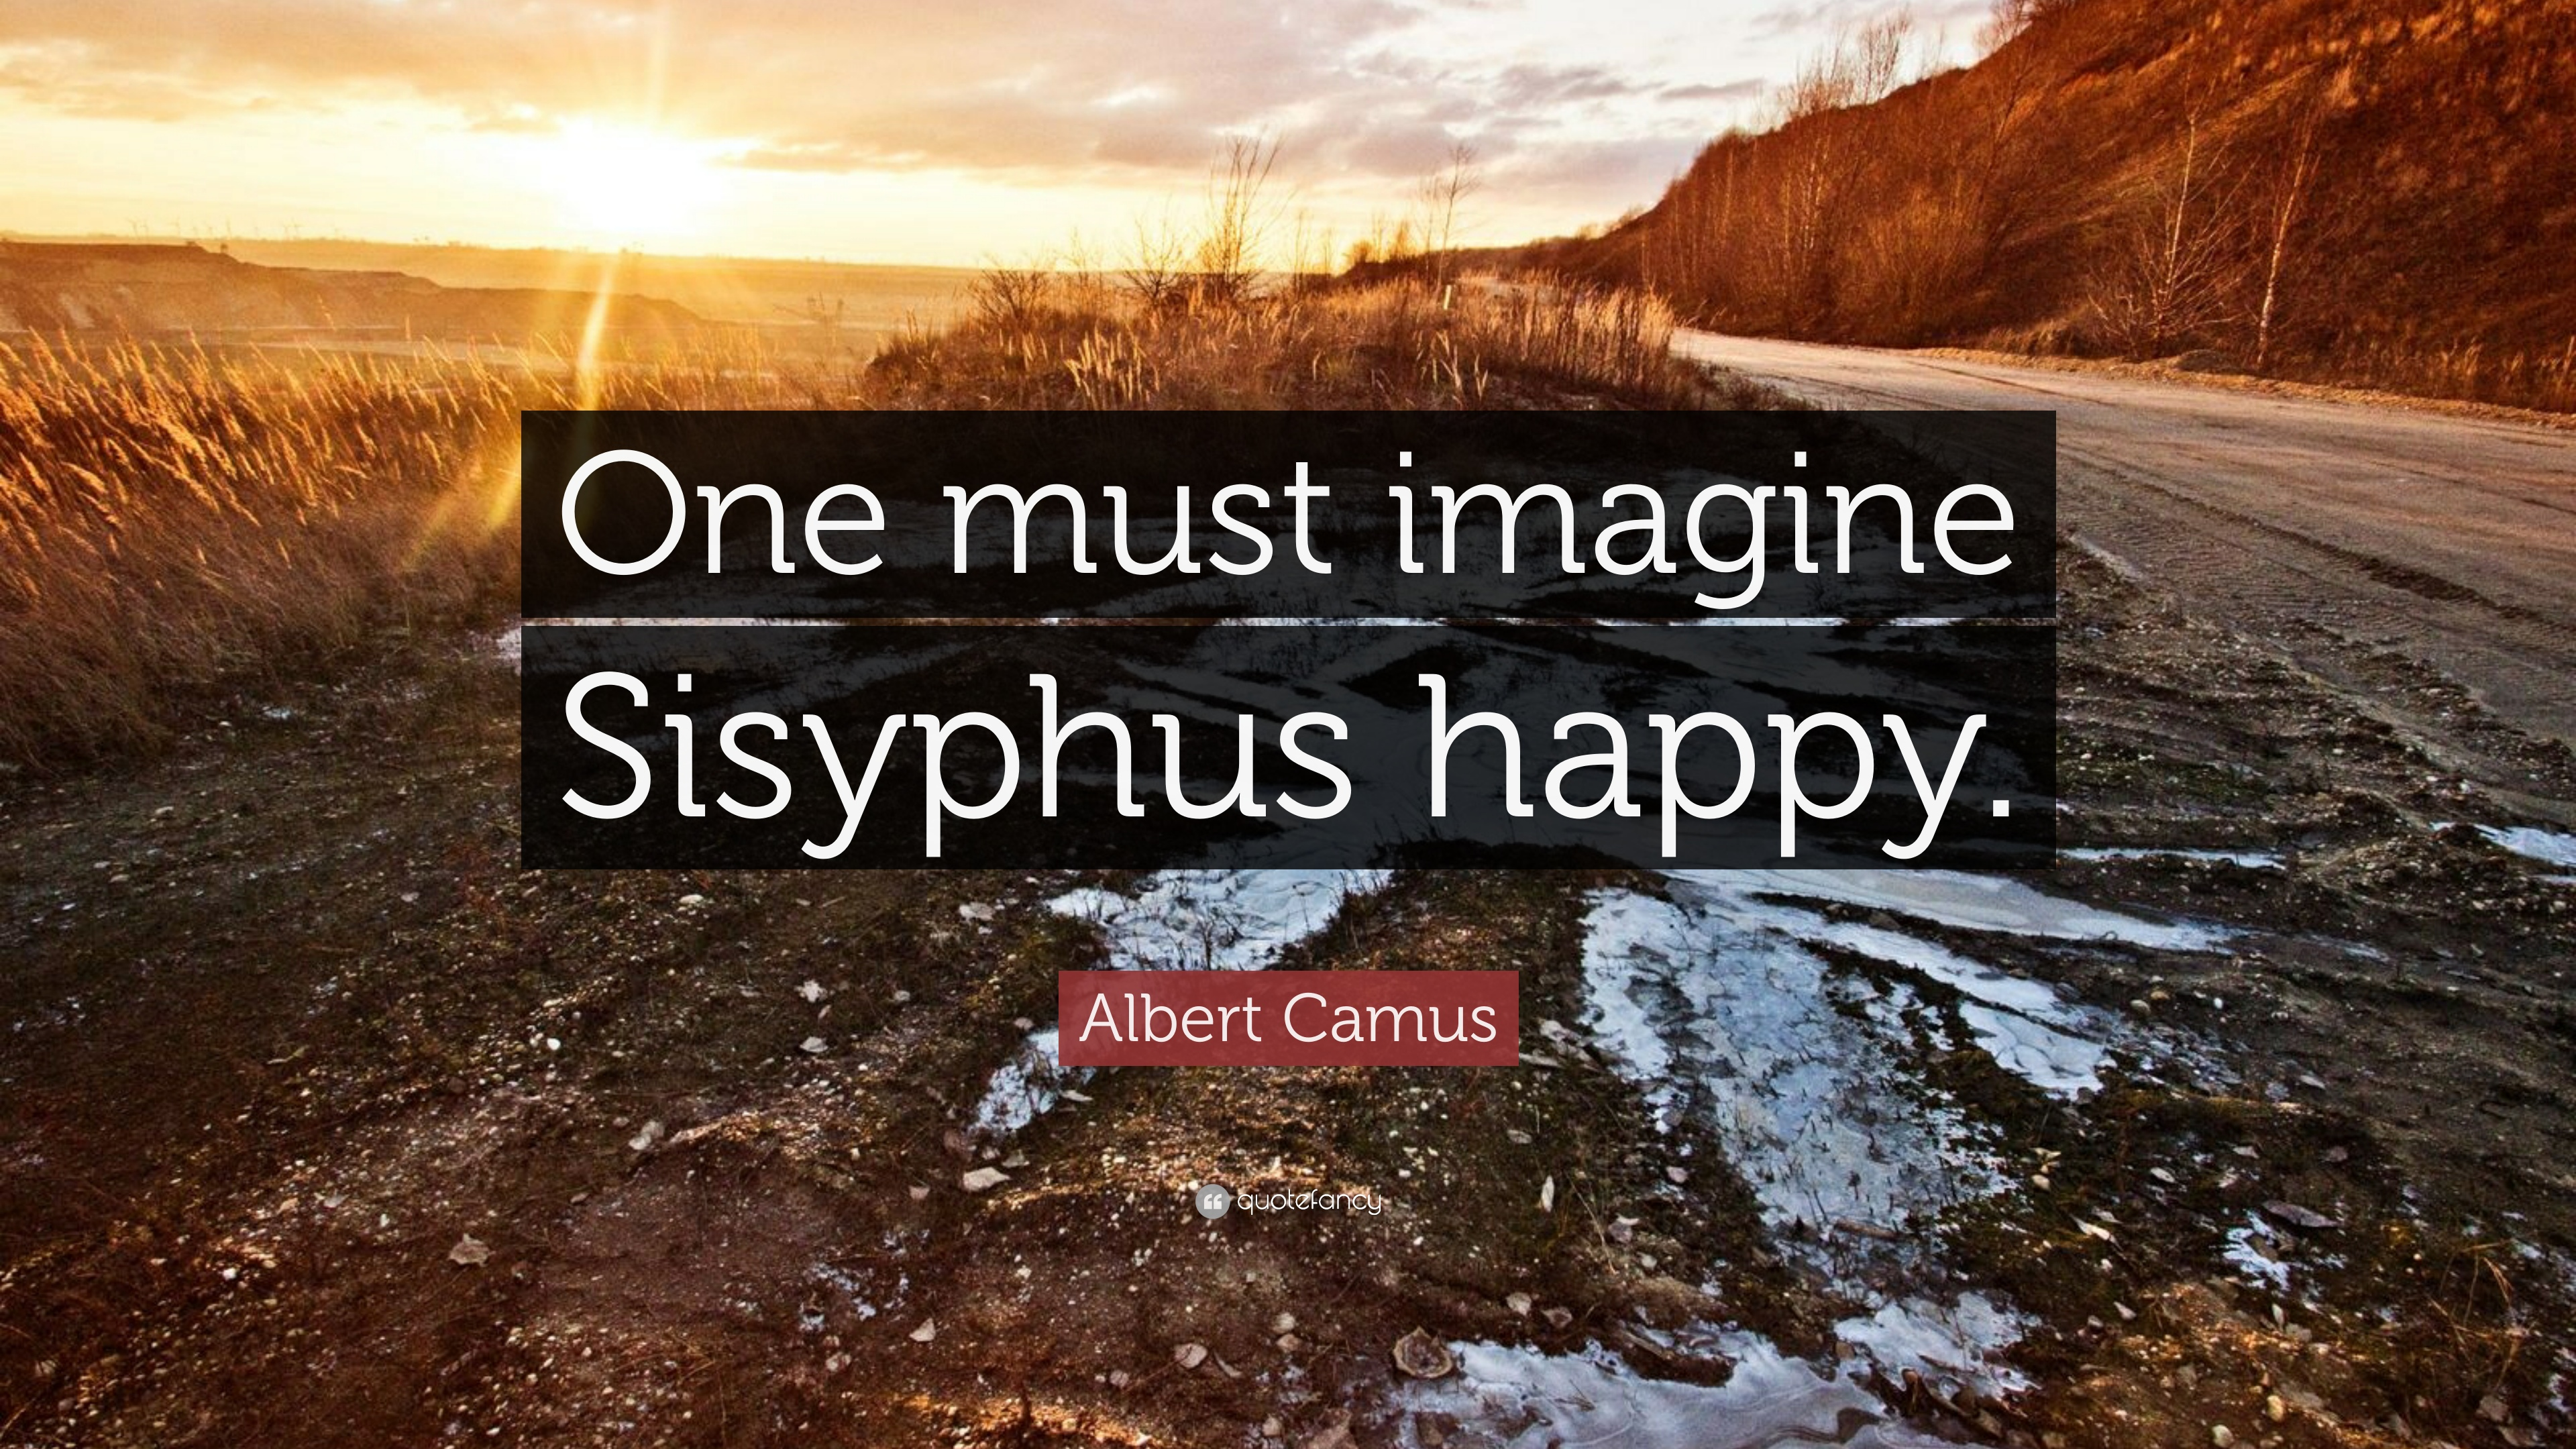 albert camus essay on the myth of sisyphus The myth of sisyphus (french: le mythe de sisyphe) is a 1942 philosophical essay by albert camusthe english translation by justin o'brien was first published in 1955 in the essay, camus.